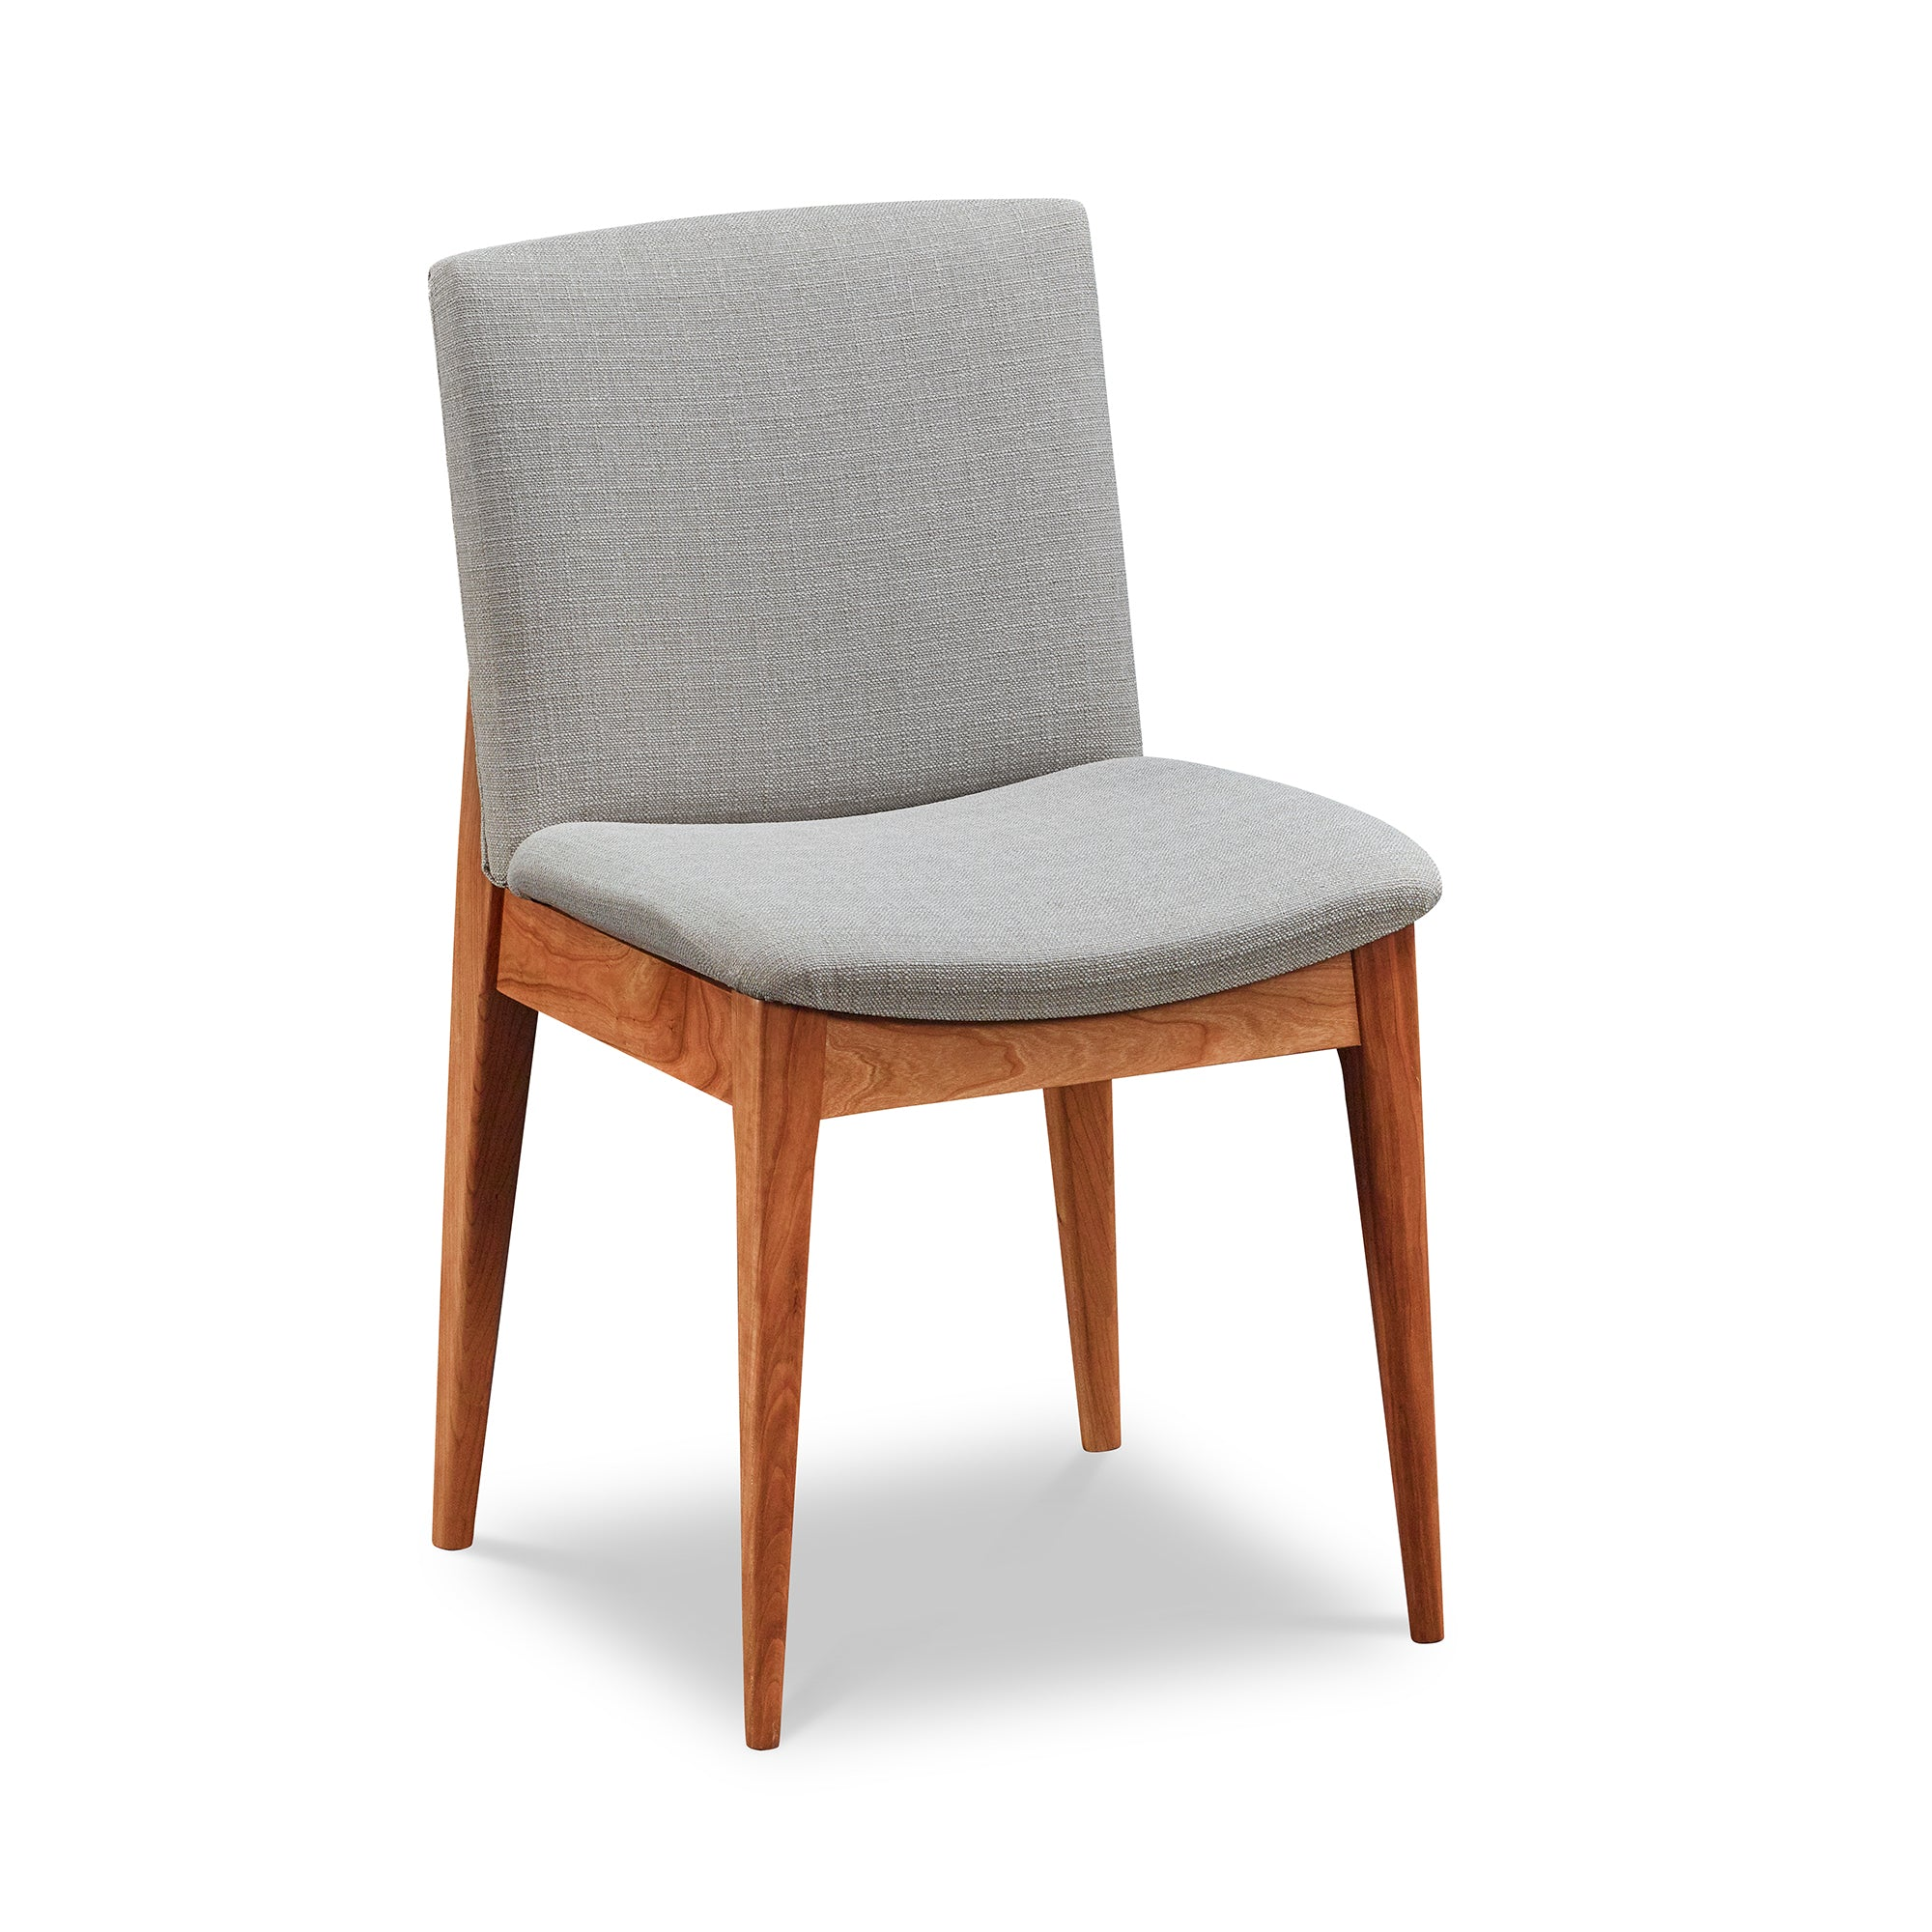 Mid-century modern Metro Chair with round tapered legs in cherry and light grey cushion